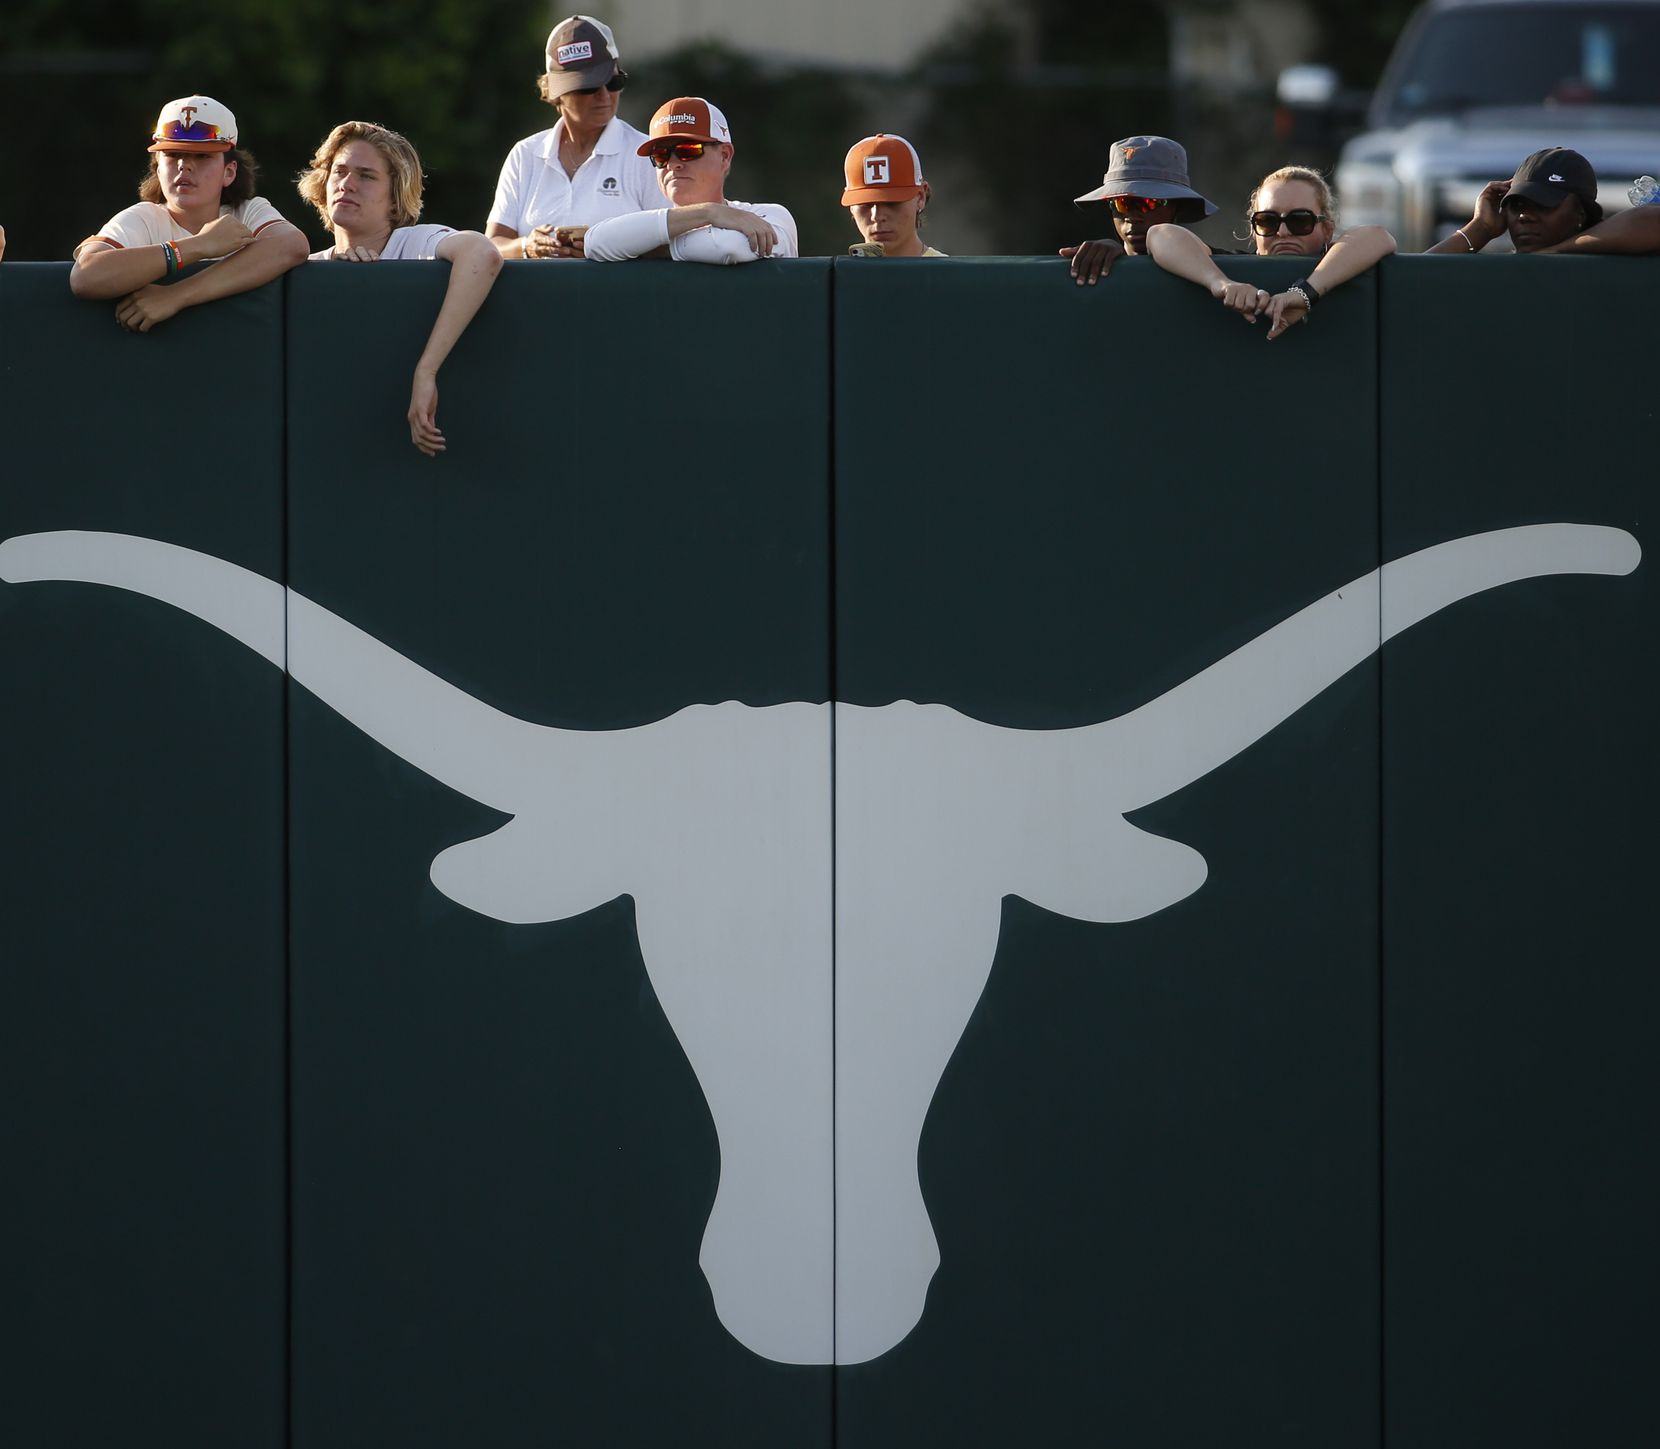 Fans watch from over the left field wall during the 7th inning of play between Aledo and Barbers Hill. The two teams played their UIL 5A state softball championship game at Red and Charline McCombs Field on the University of Texas campus in Austin on June 5, 2021. (Steve Hamm/ Special Contributor)